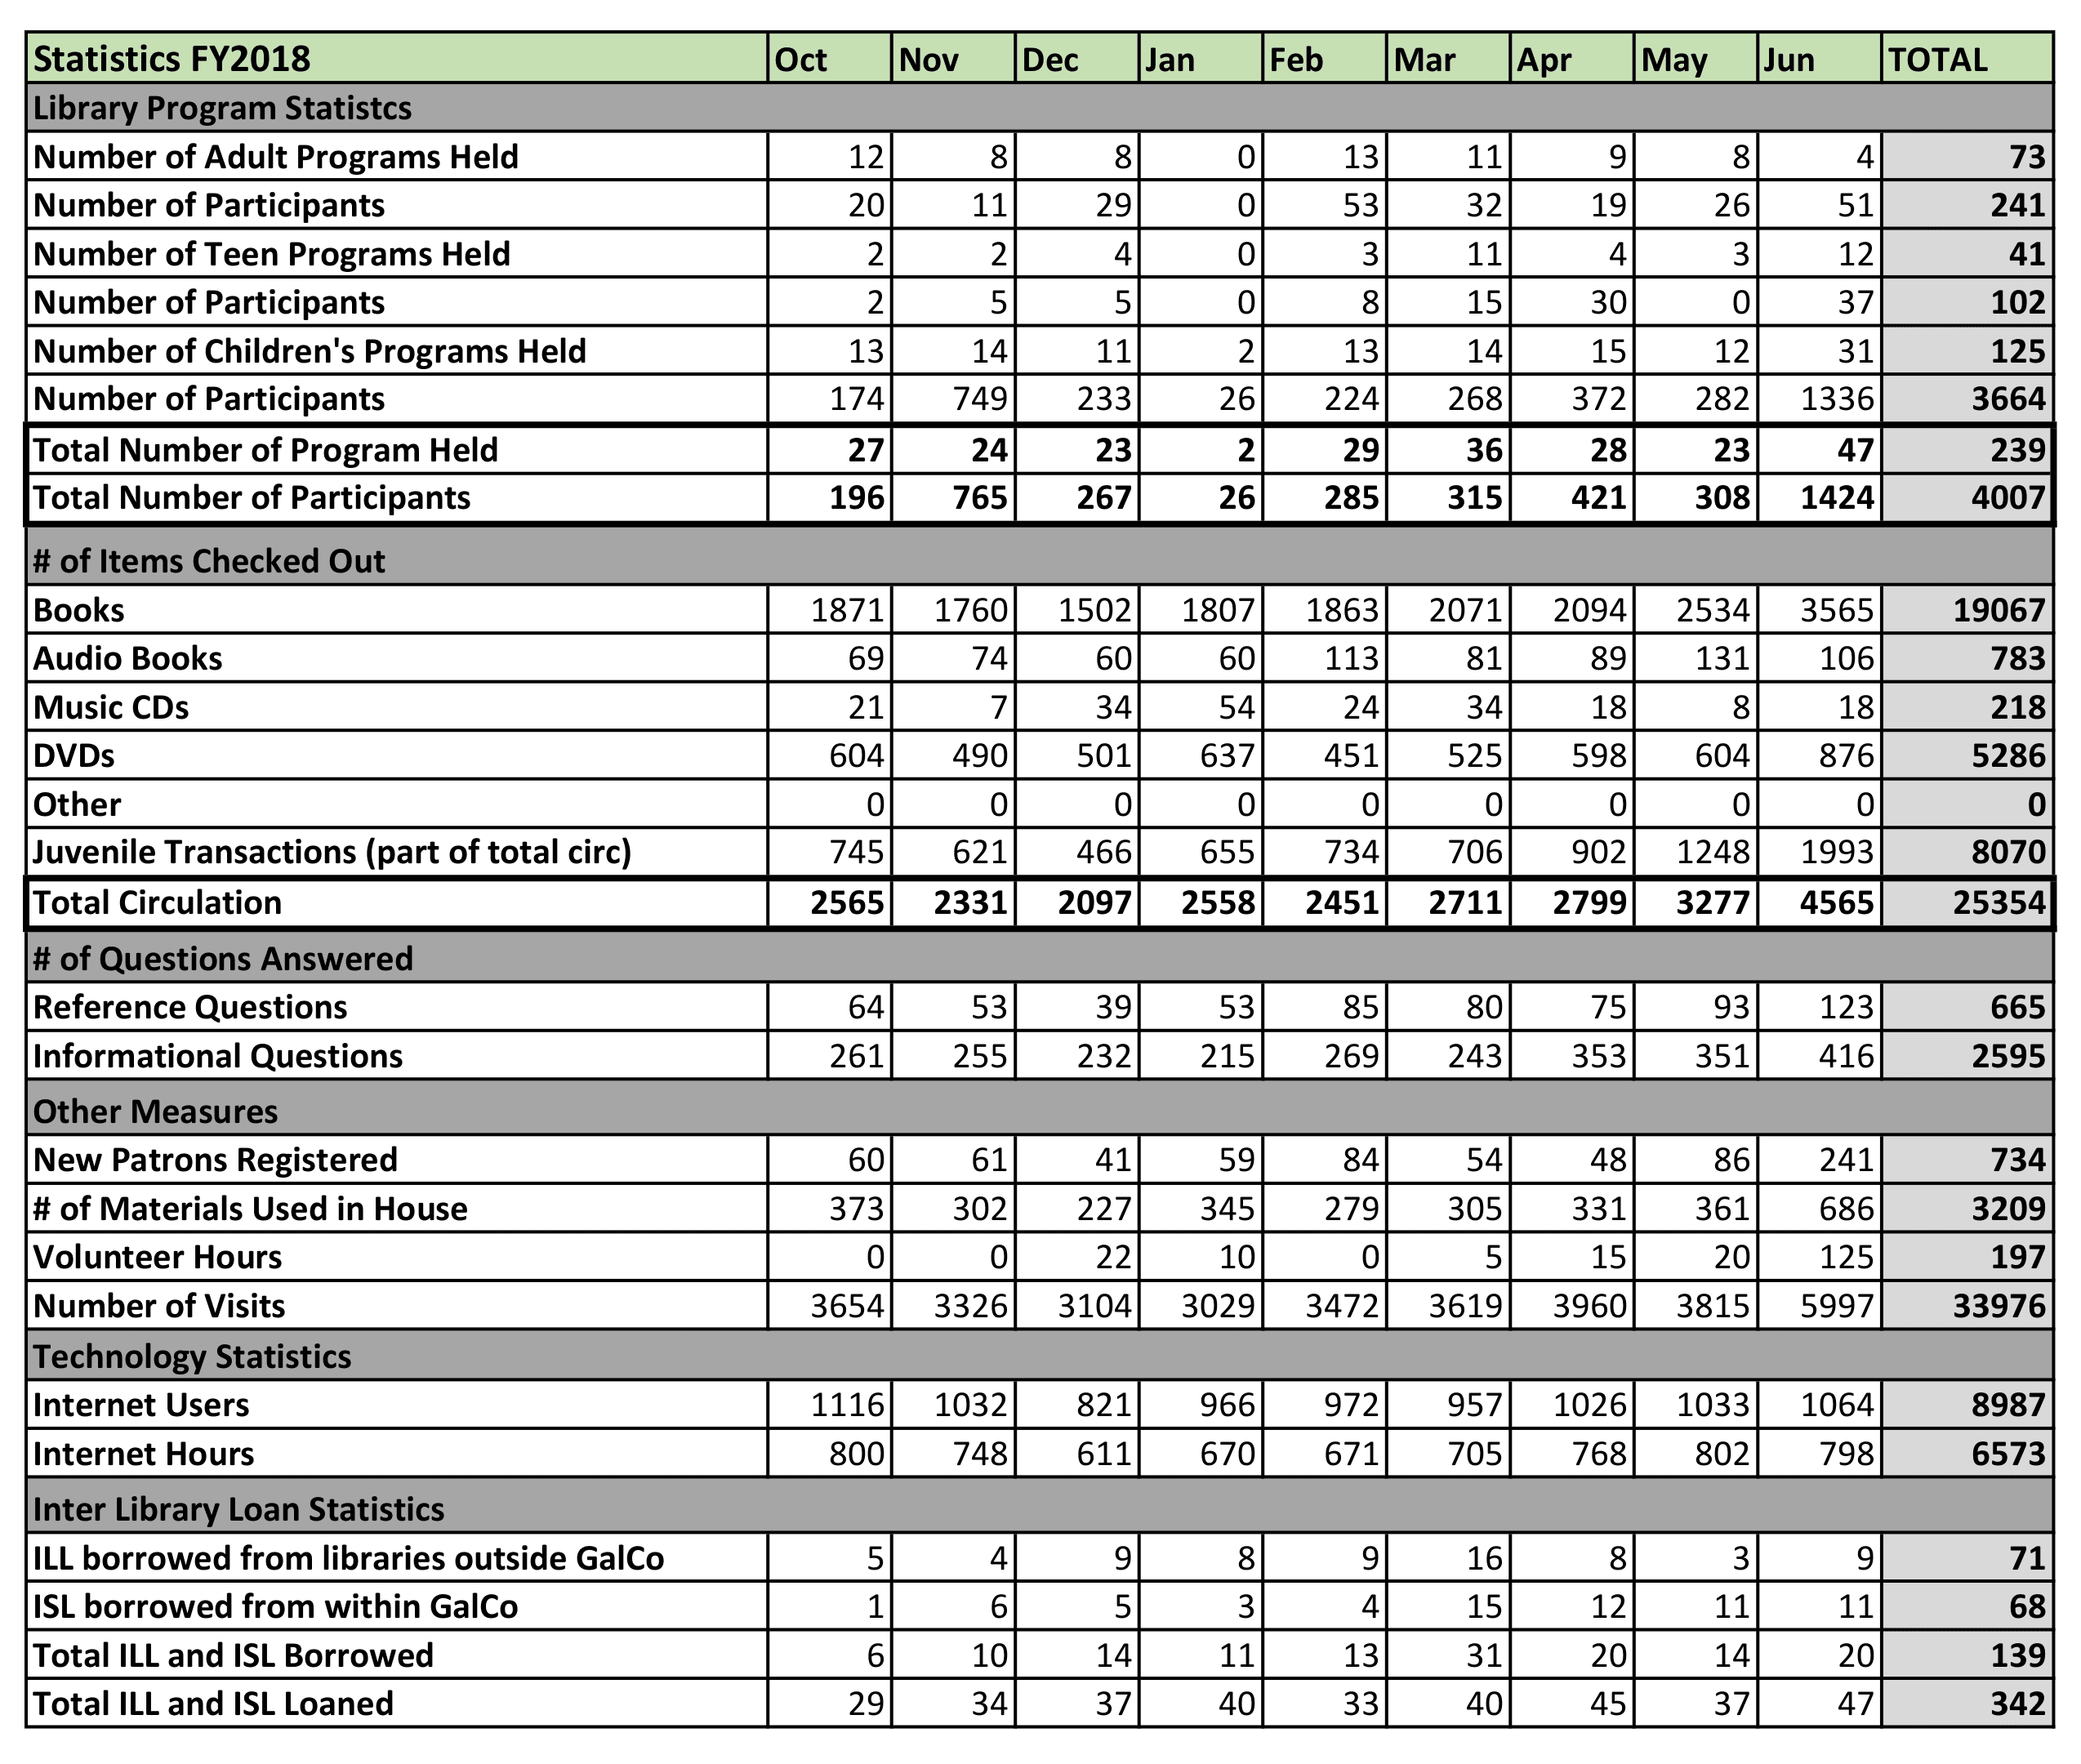 Statistics Report FY2018 - June